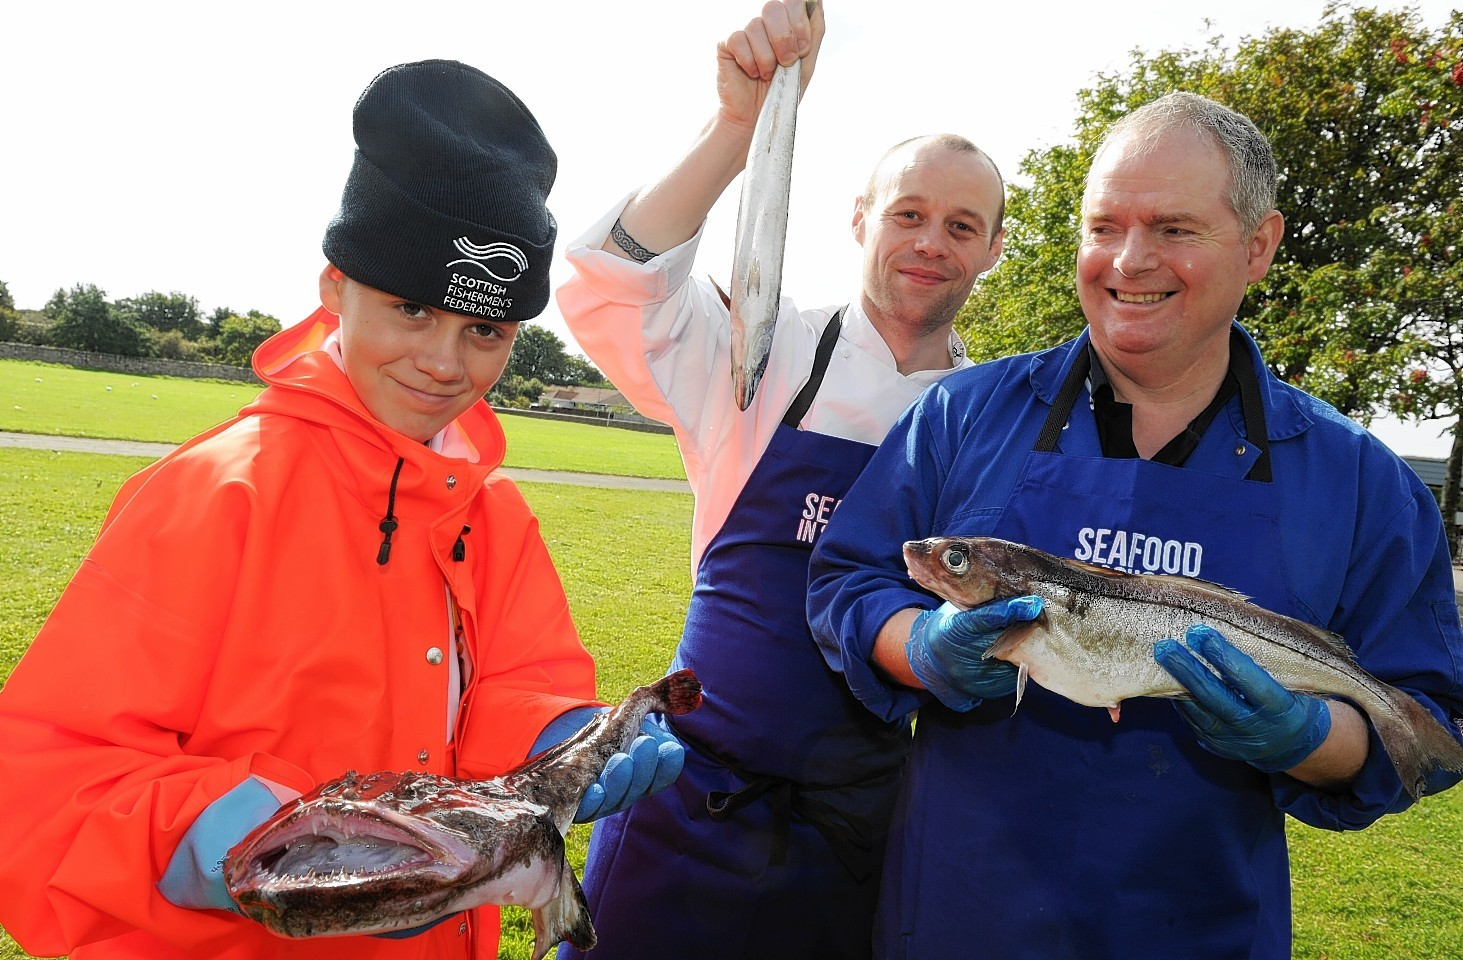 Seafood in Schools roadshow at Mackie Academy. Cameron Carnie, 12,  with chef David Morrison and skipper Peter Bruce